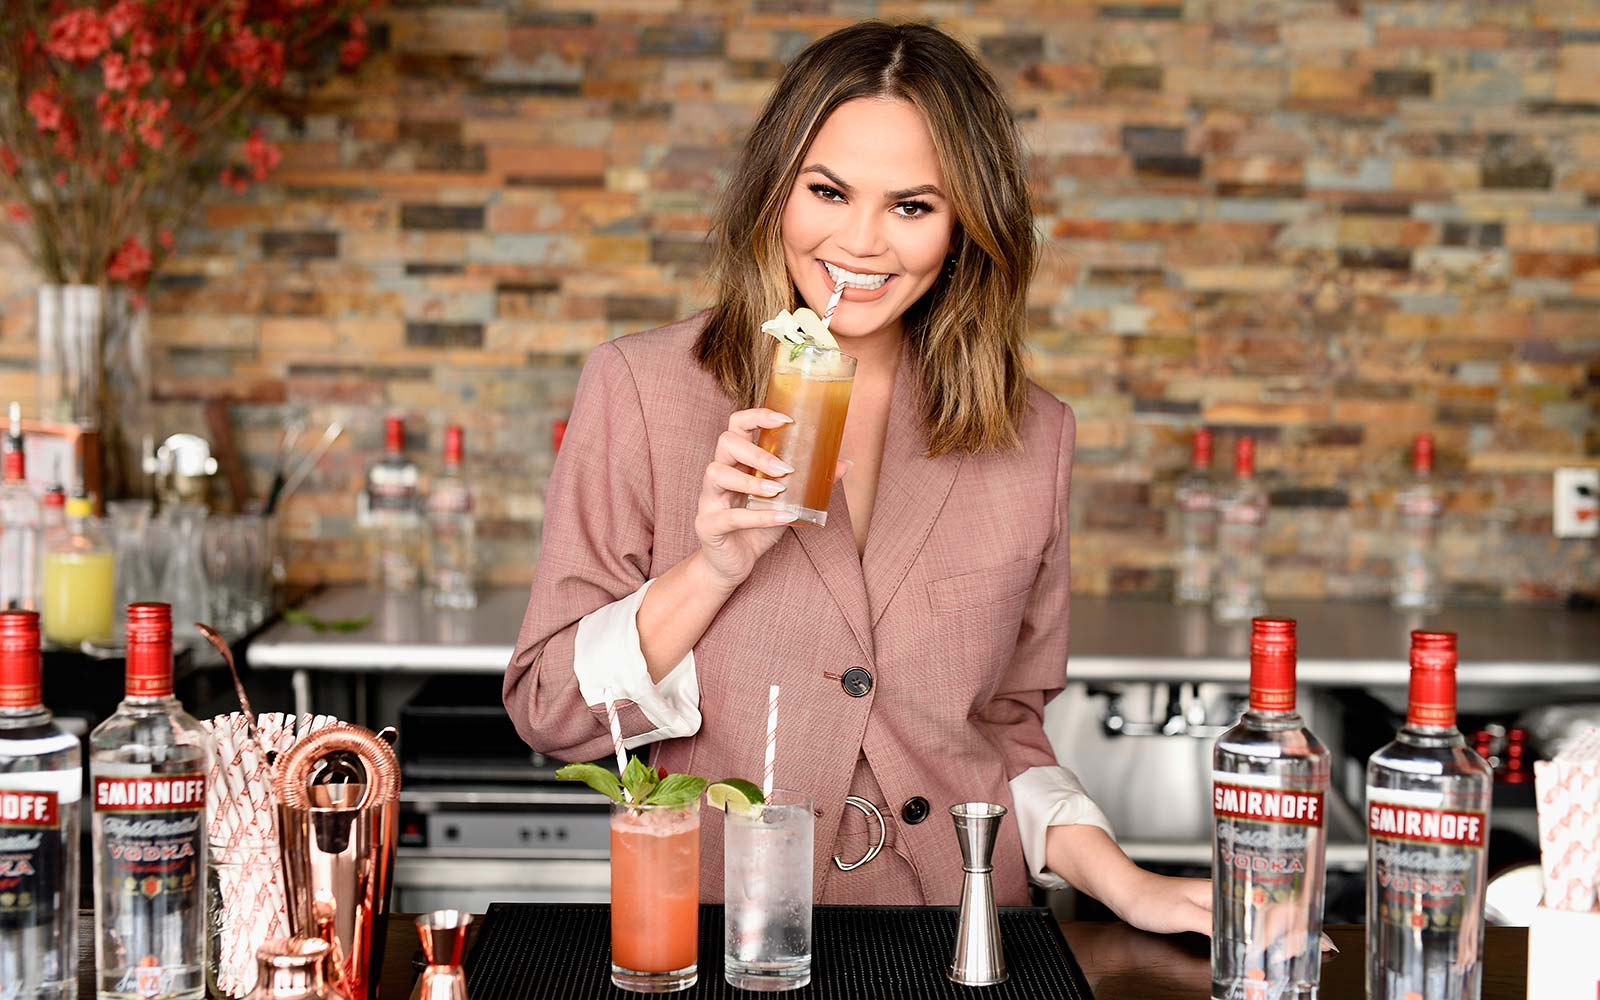 The Two Foods Chrissy Teigen Won't Eat, No Matter What